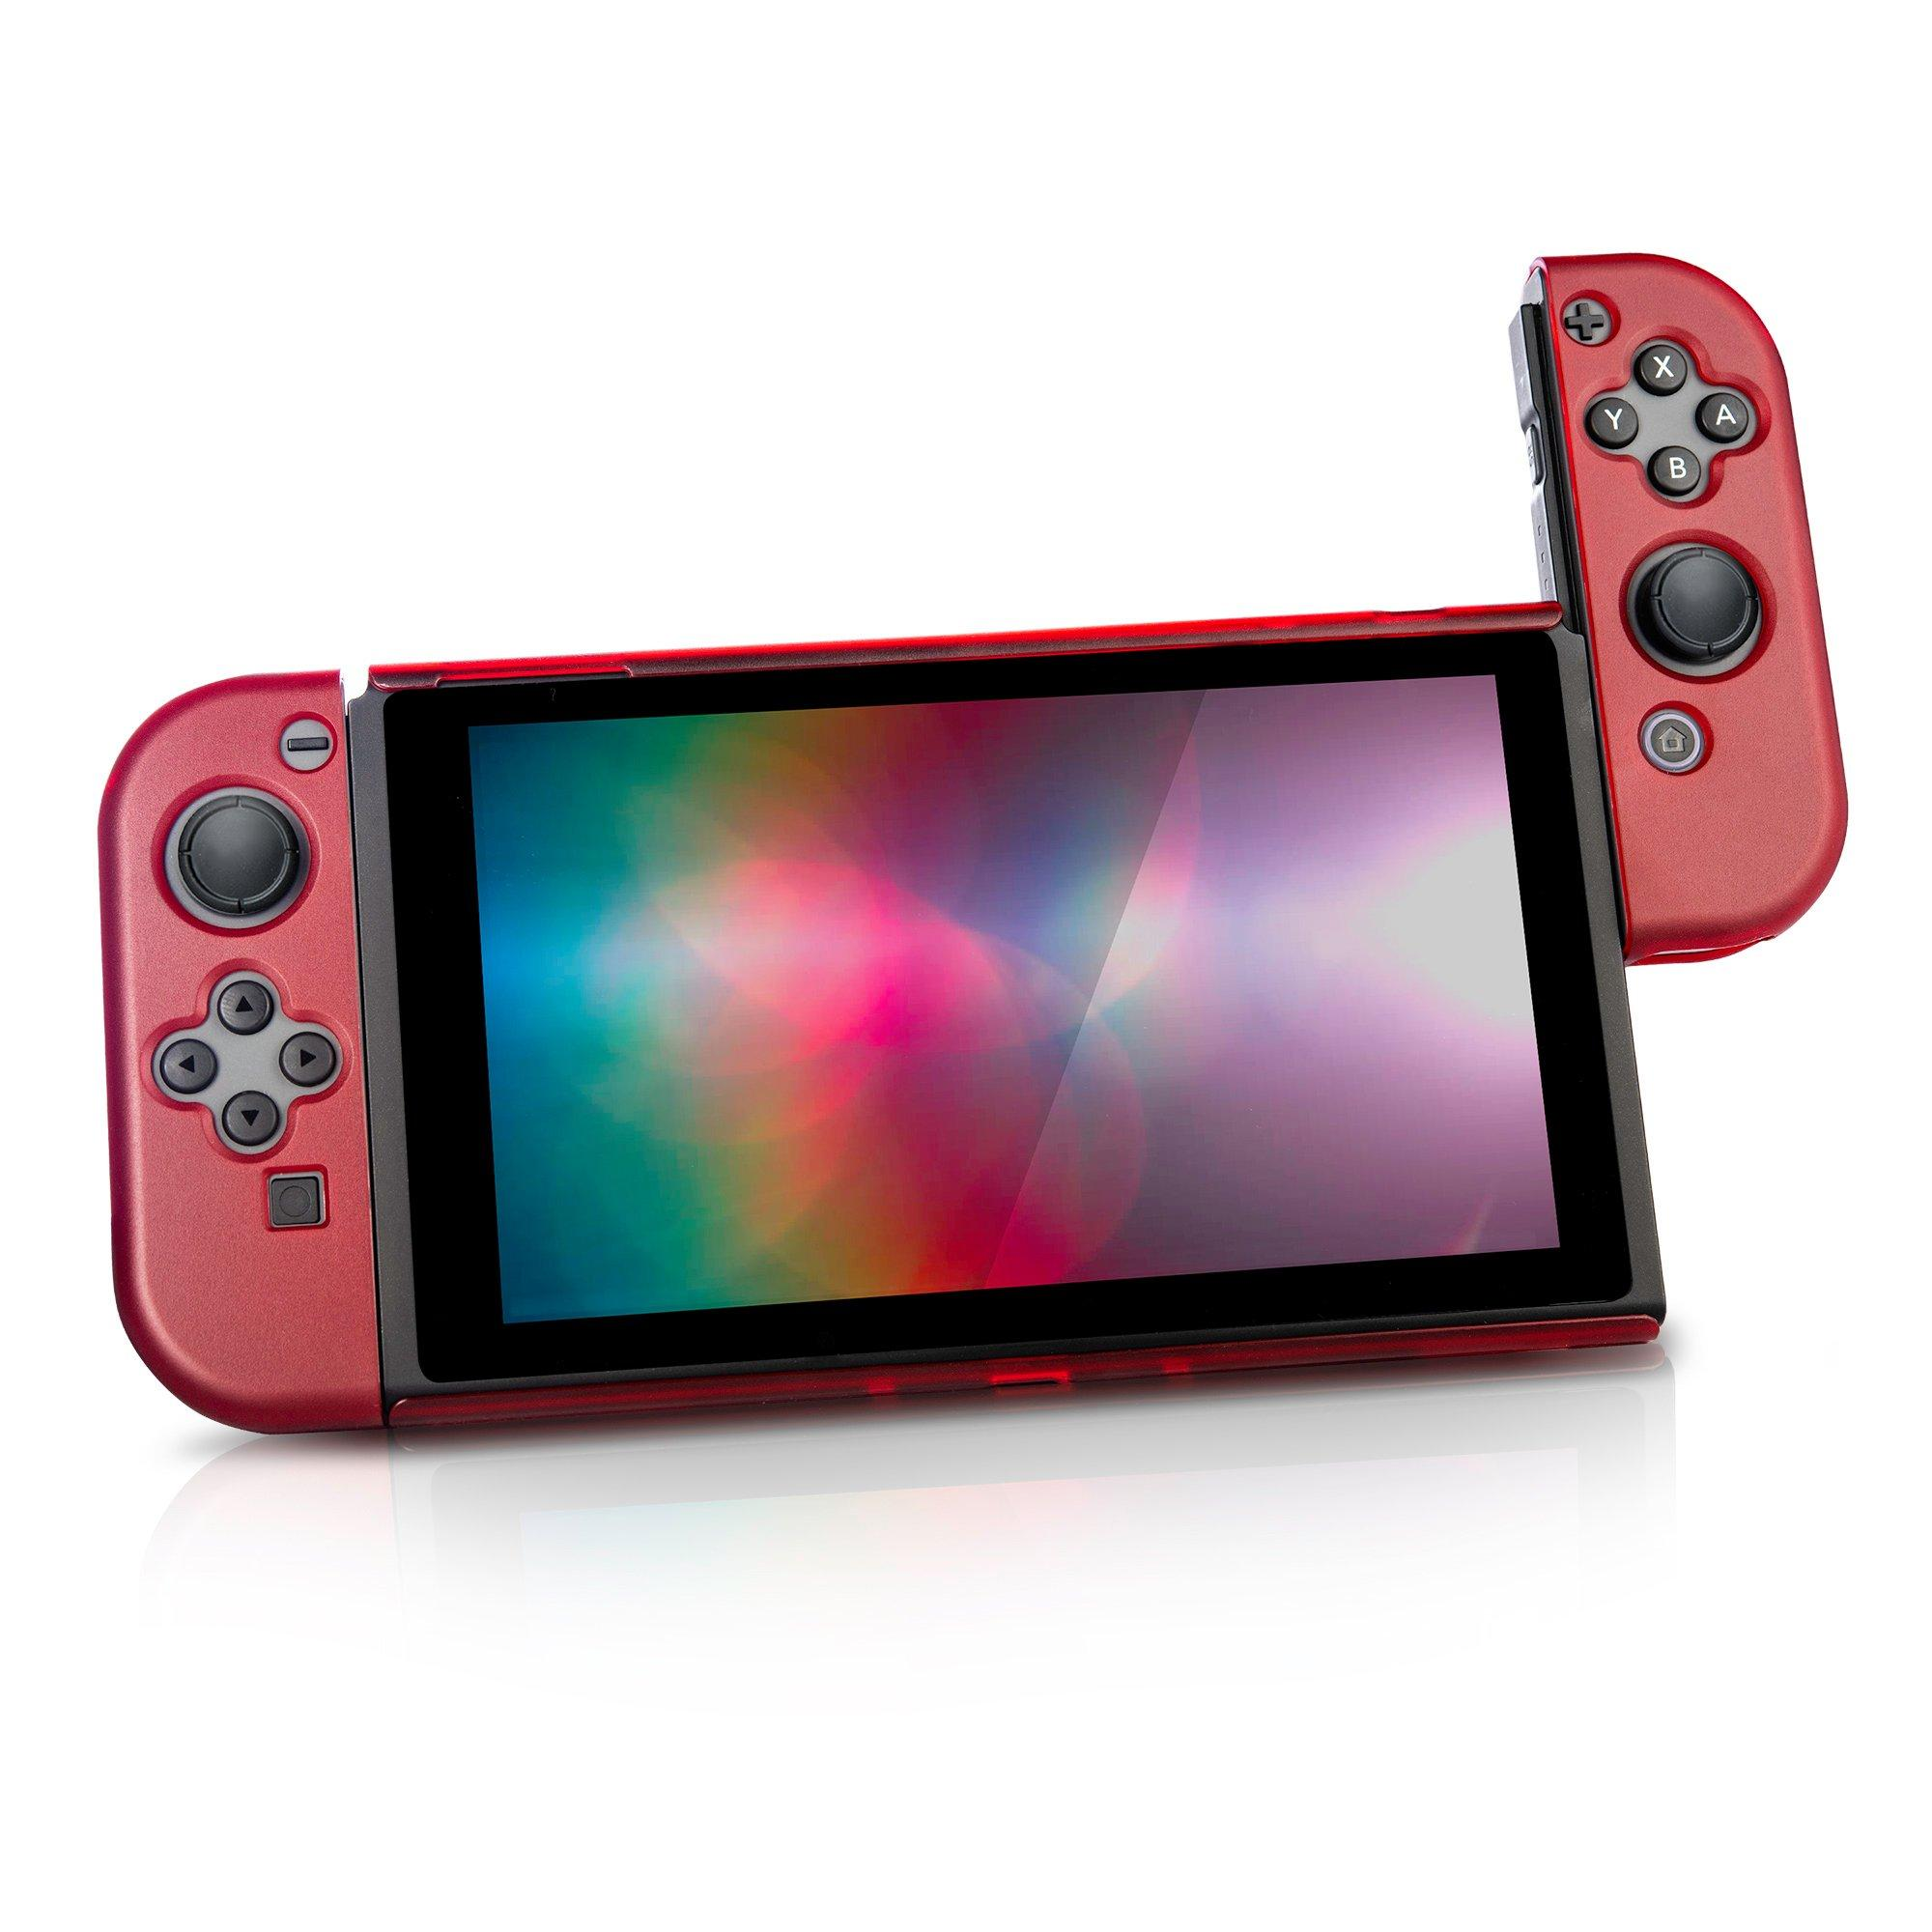 Red Thin And Tough Case For Nintendo Switch Nintendo Switch Gamestop